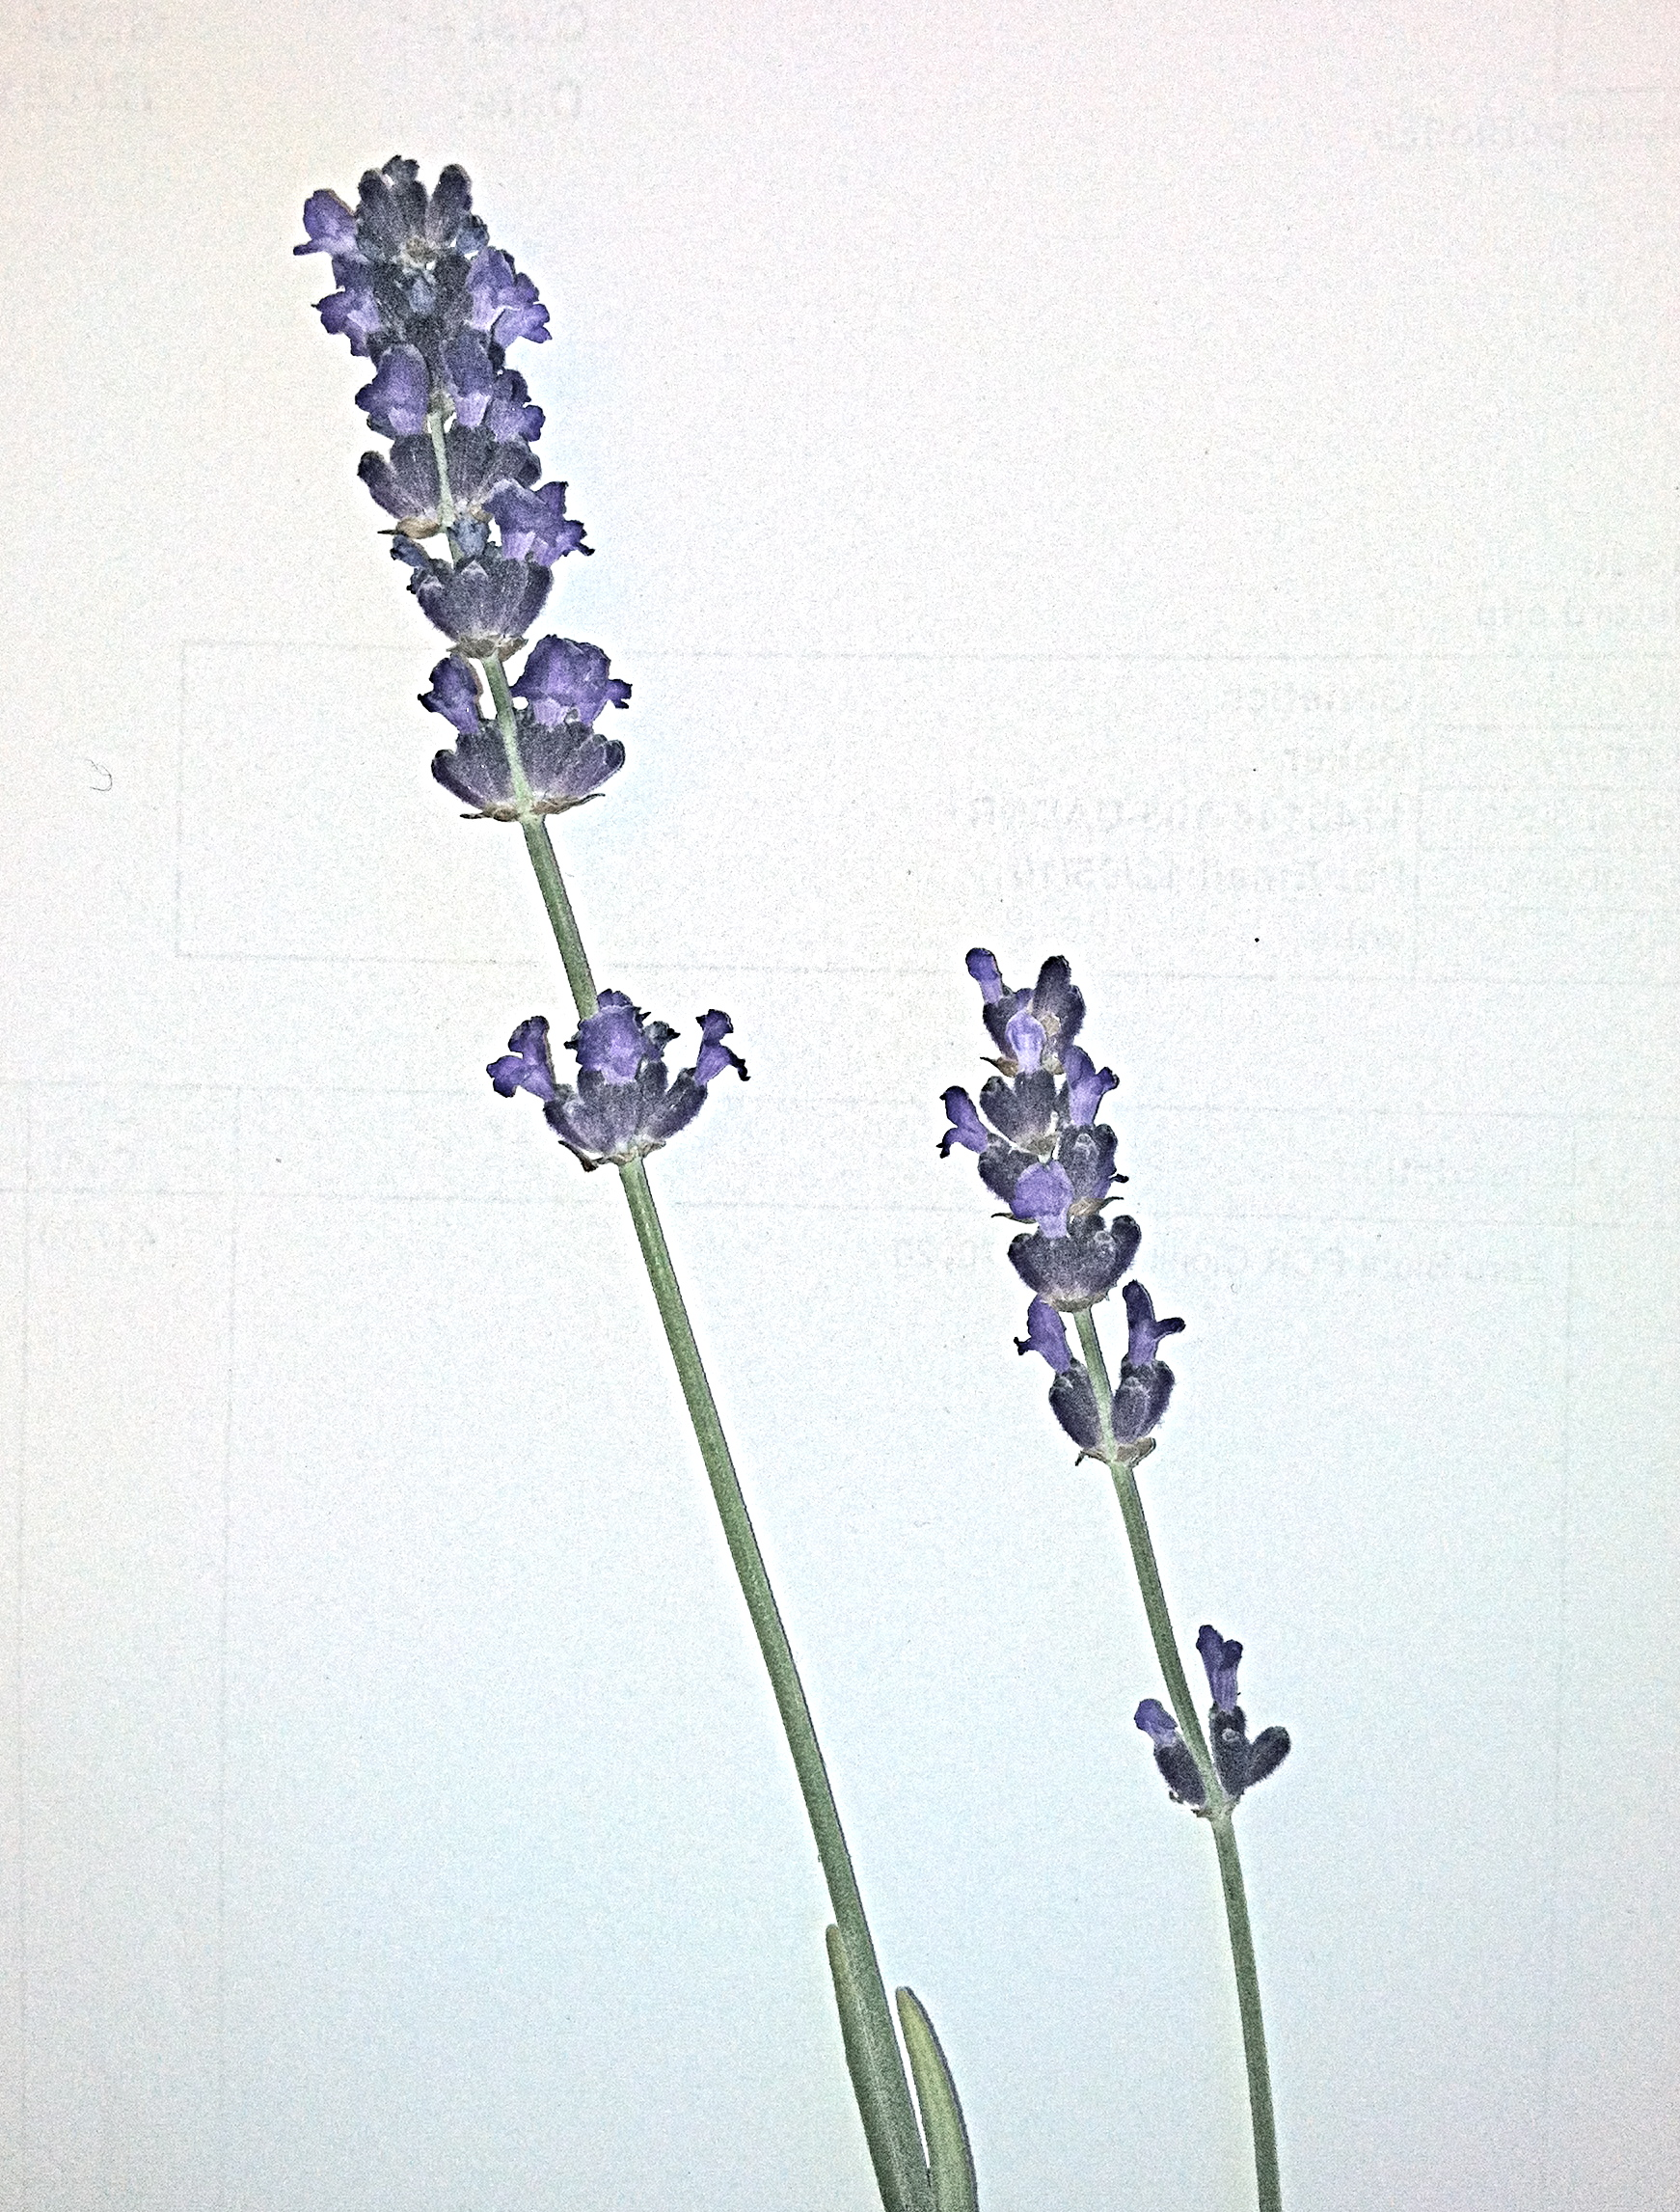 1000+ images about lavandula angustifolia on Pinterest.